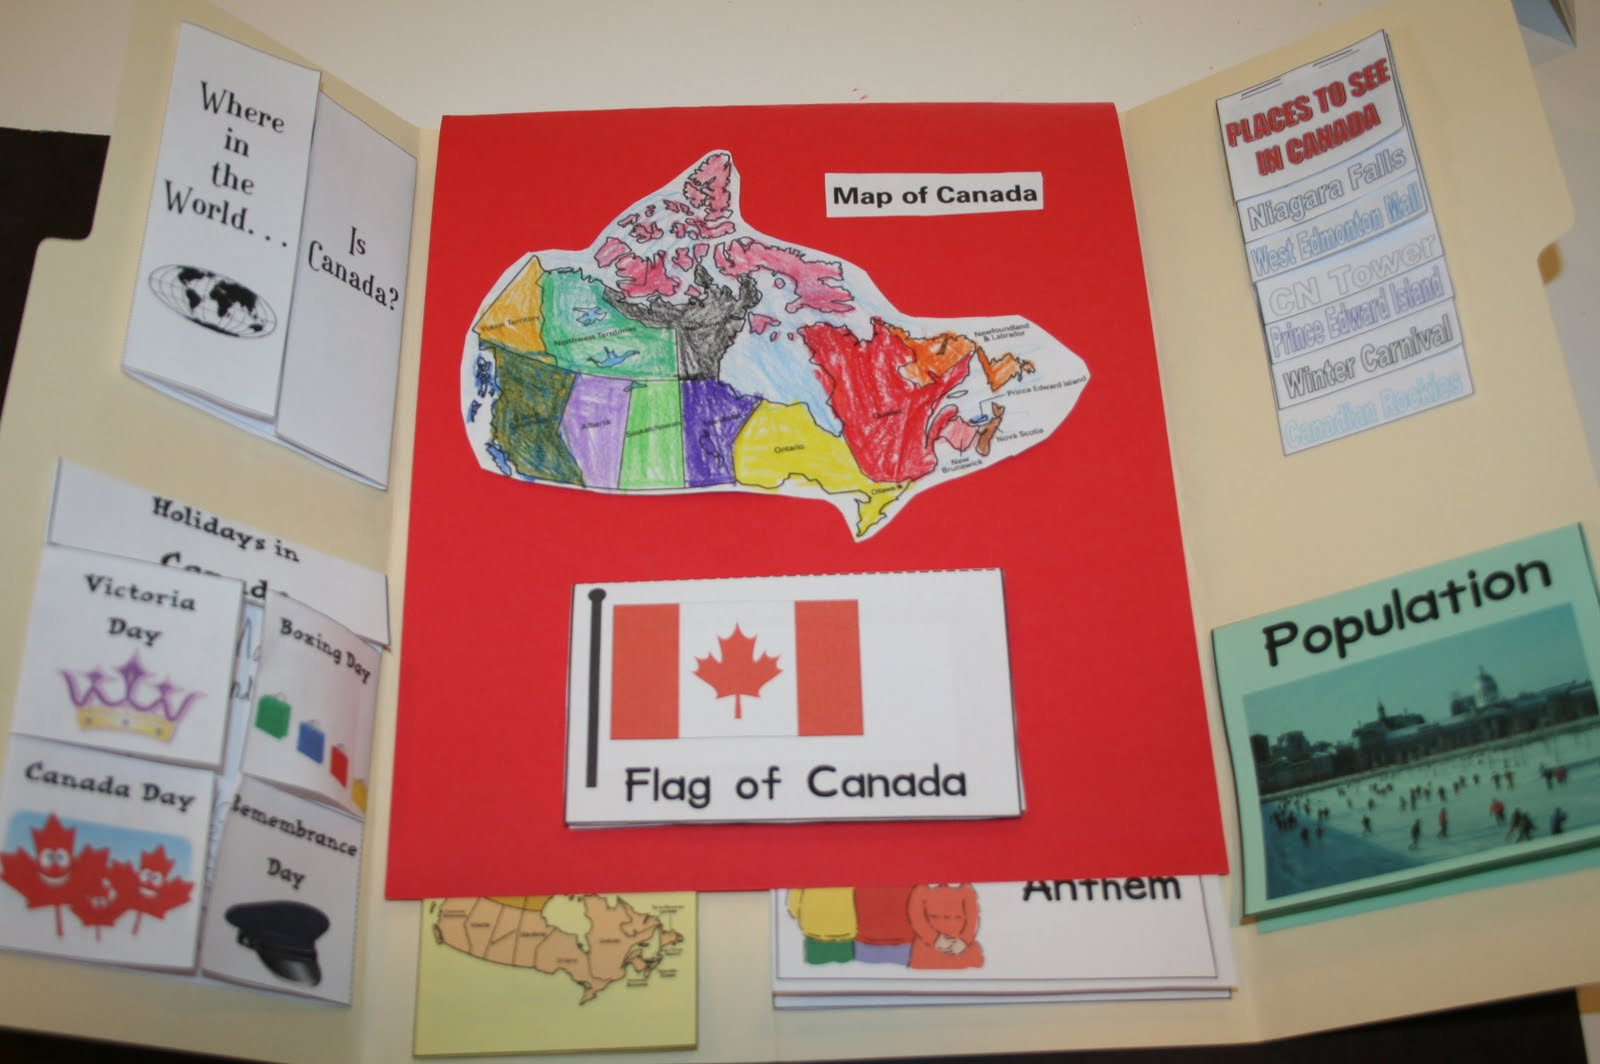 geography and the country of canada Unique map games using maps of canada hear the names of provinces, territories, and capitals pronounced plus additional information about canadian history, geography, ecology and more play games and learn about canada before you travel.